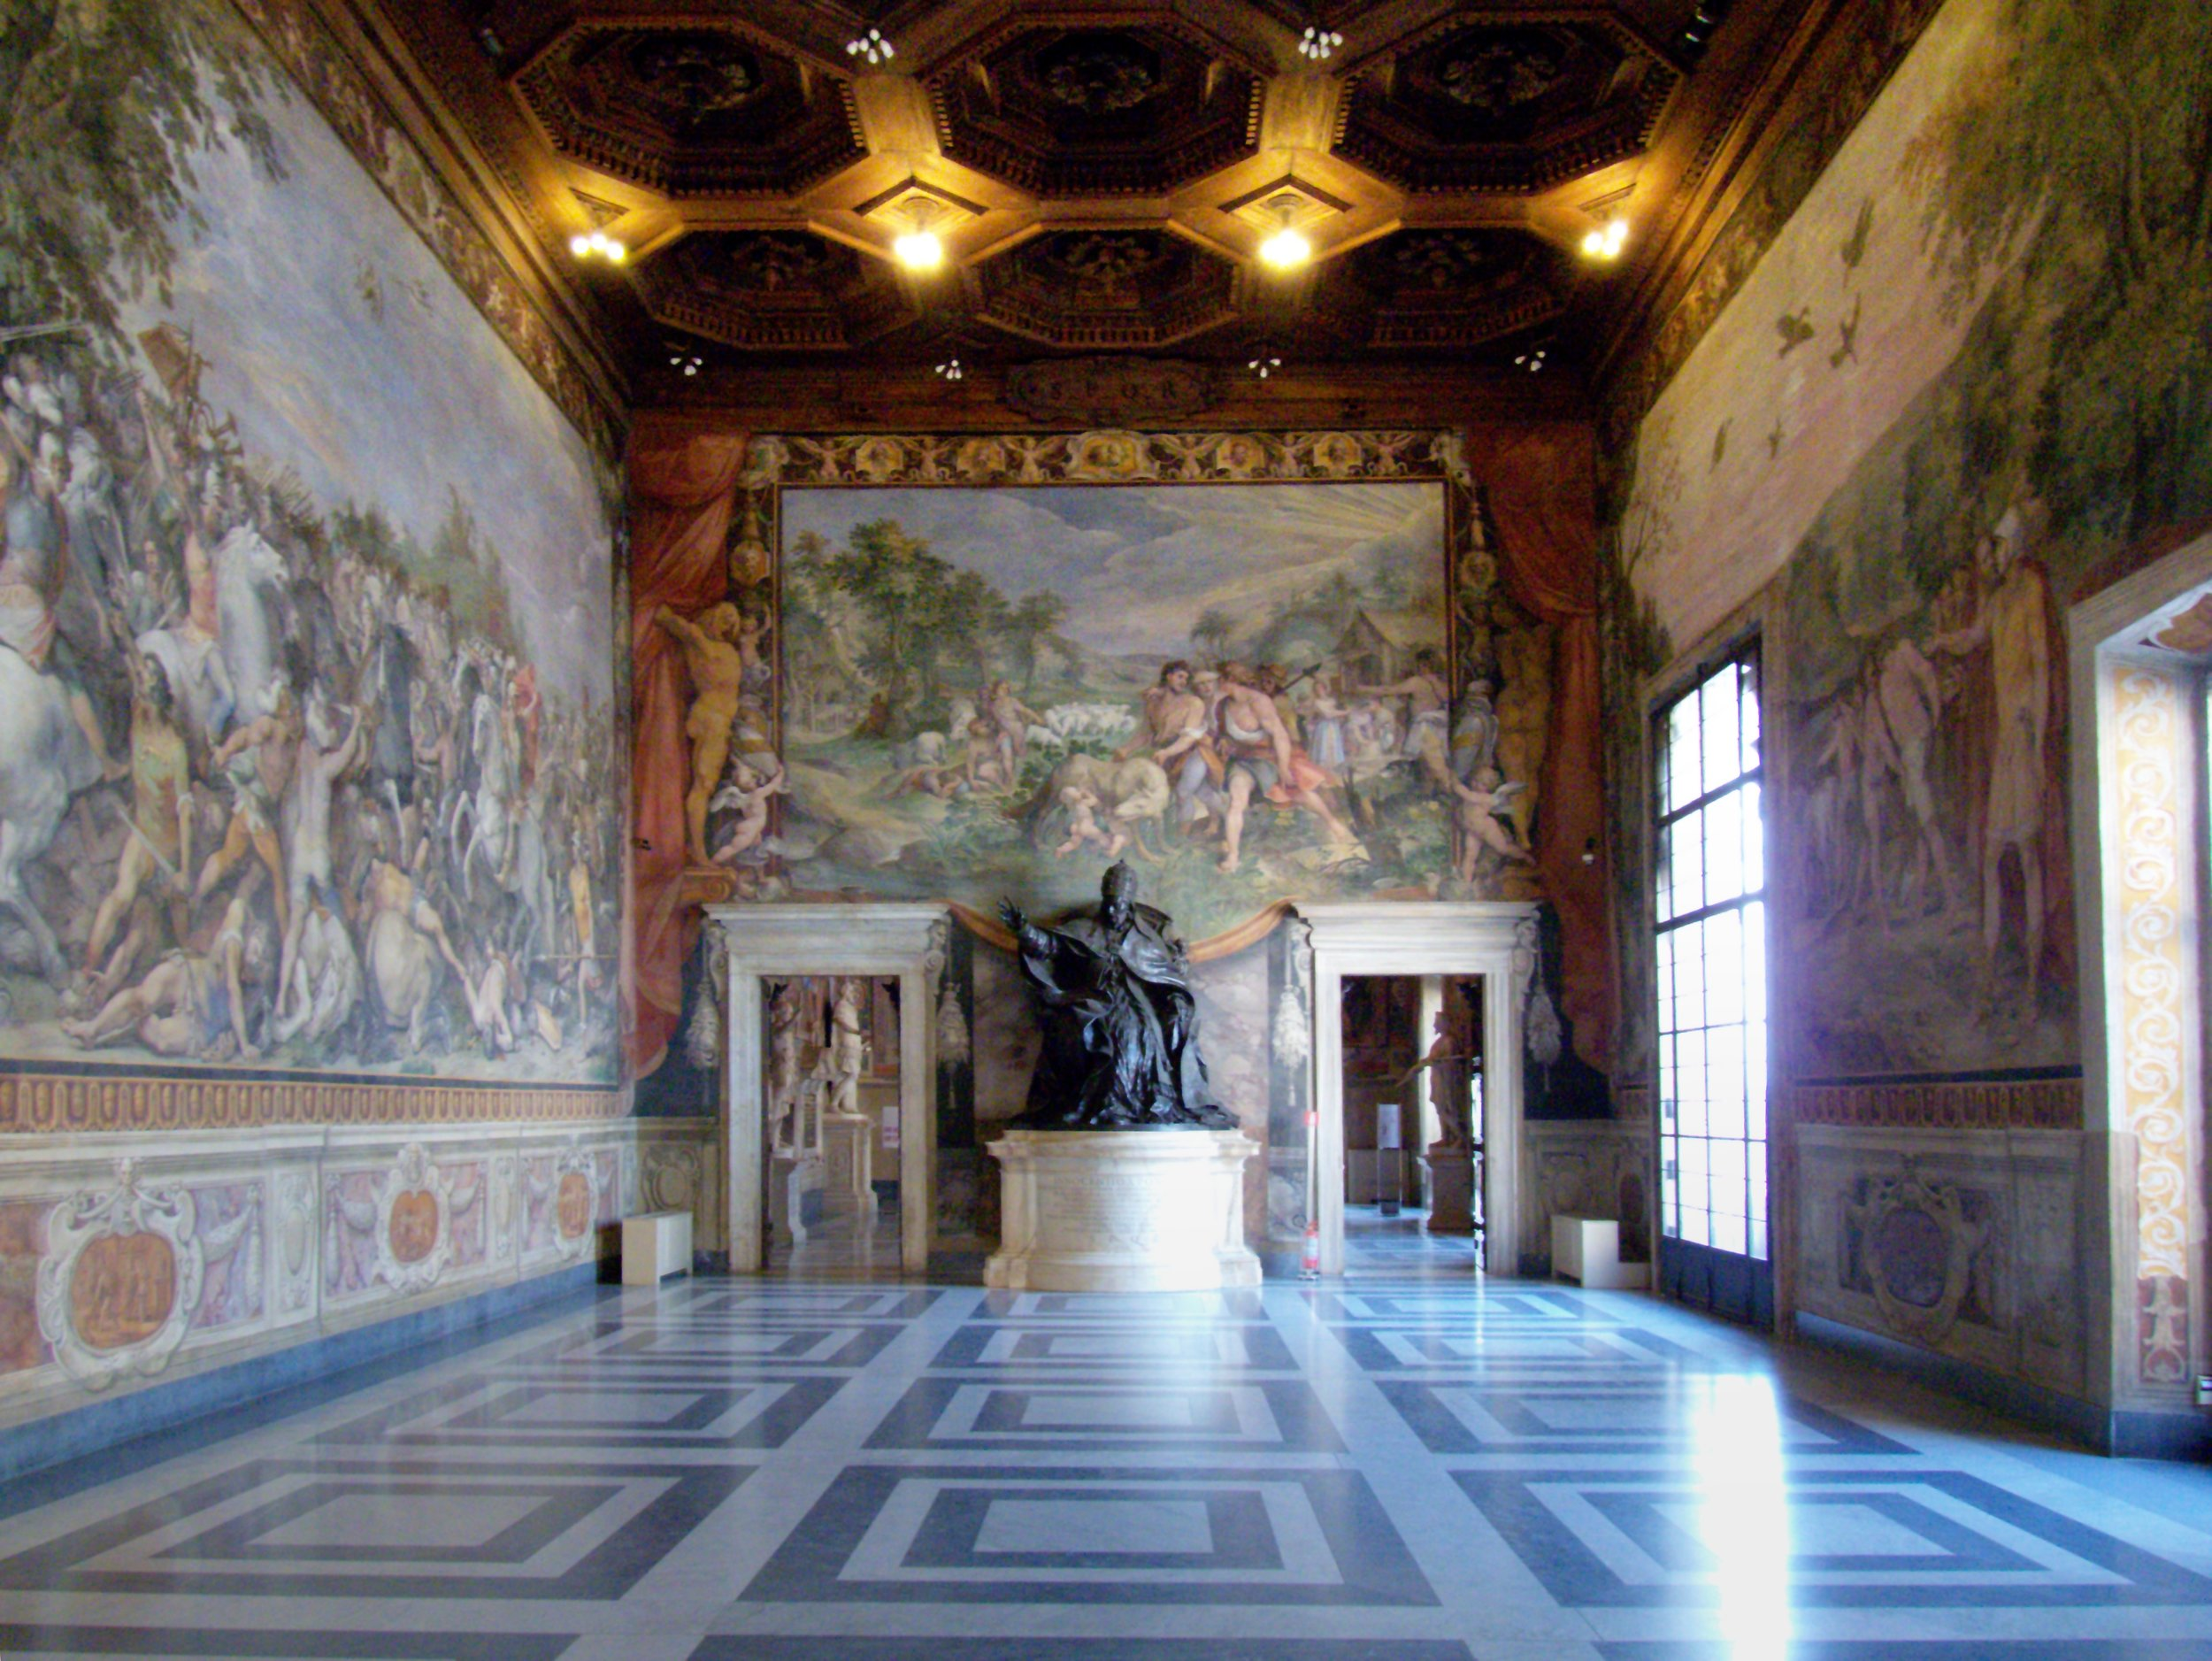 Capitoline Museums, Hall of the Horatii and the Curiatii [ Source ]